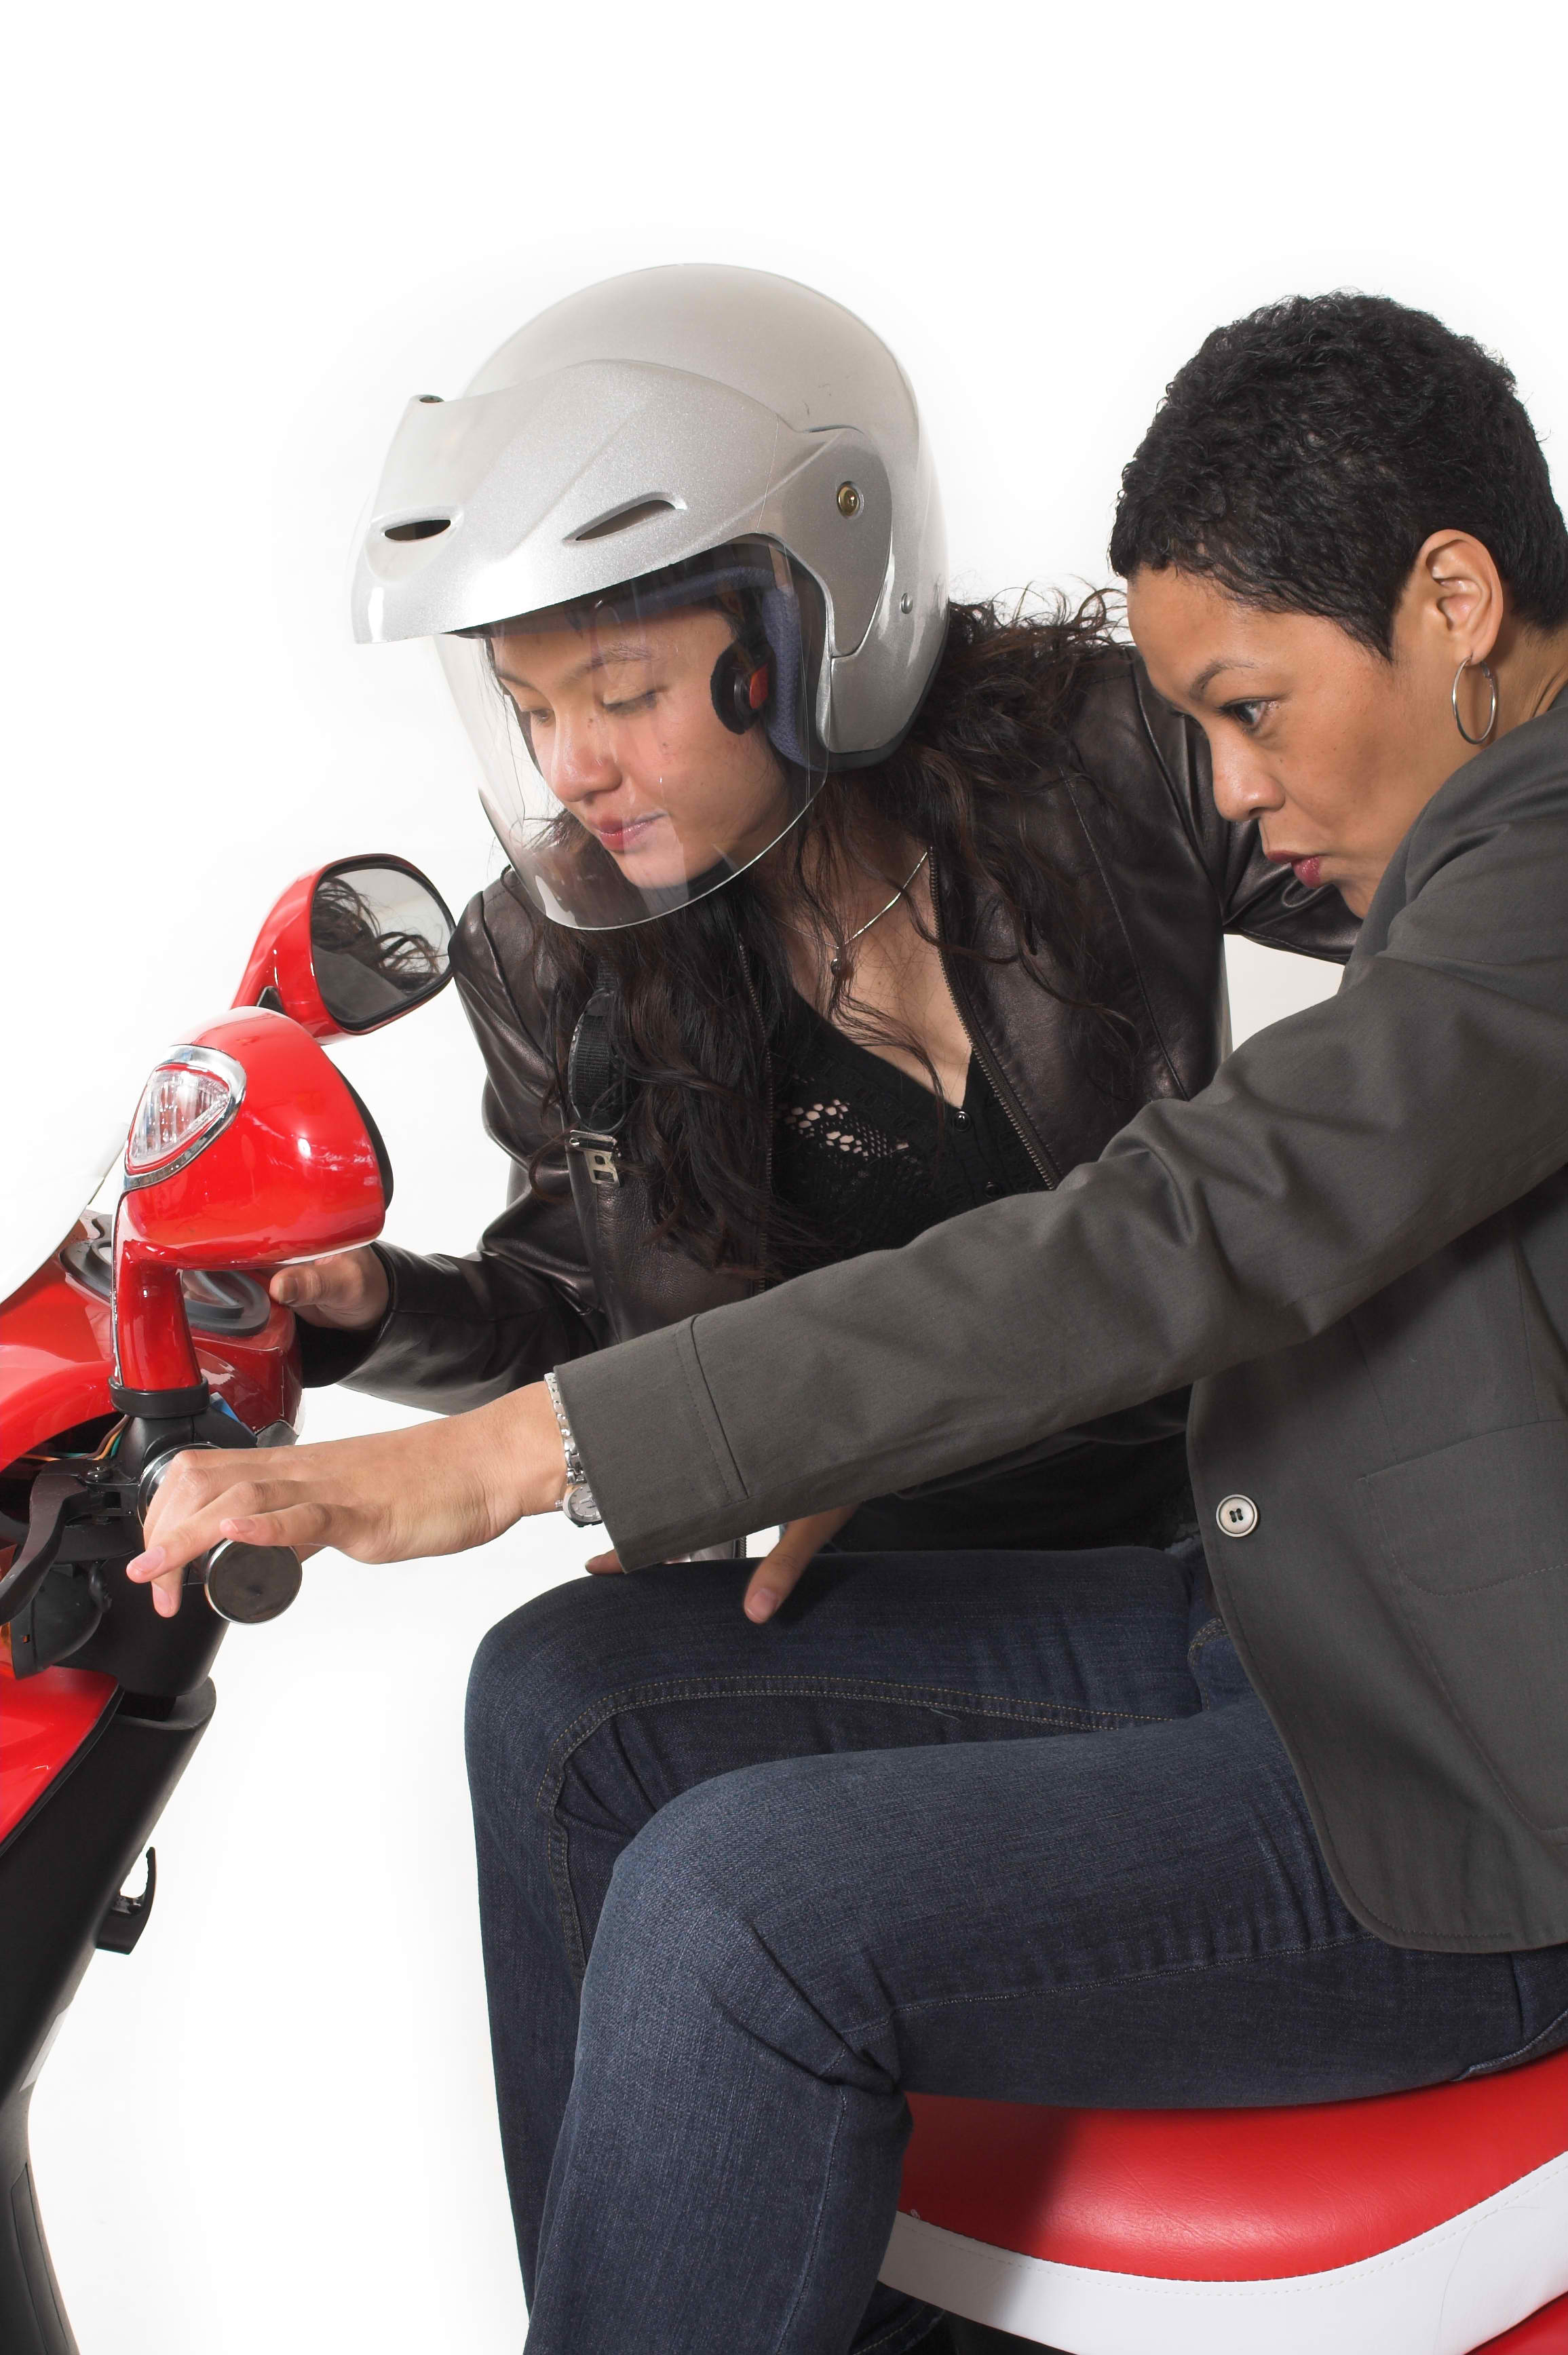 U.S. Motorcycle License Practice Tests